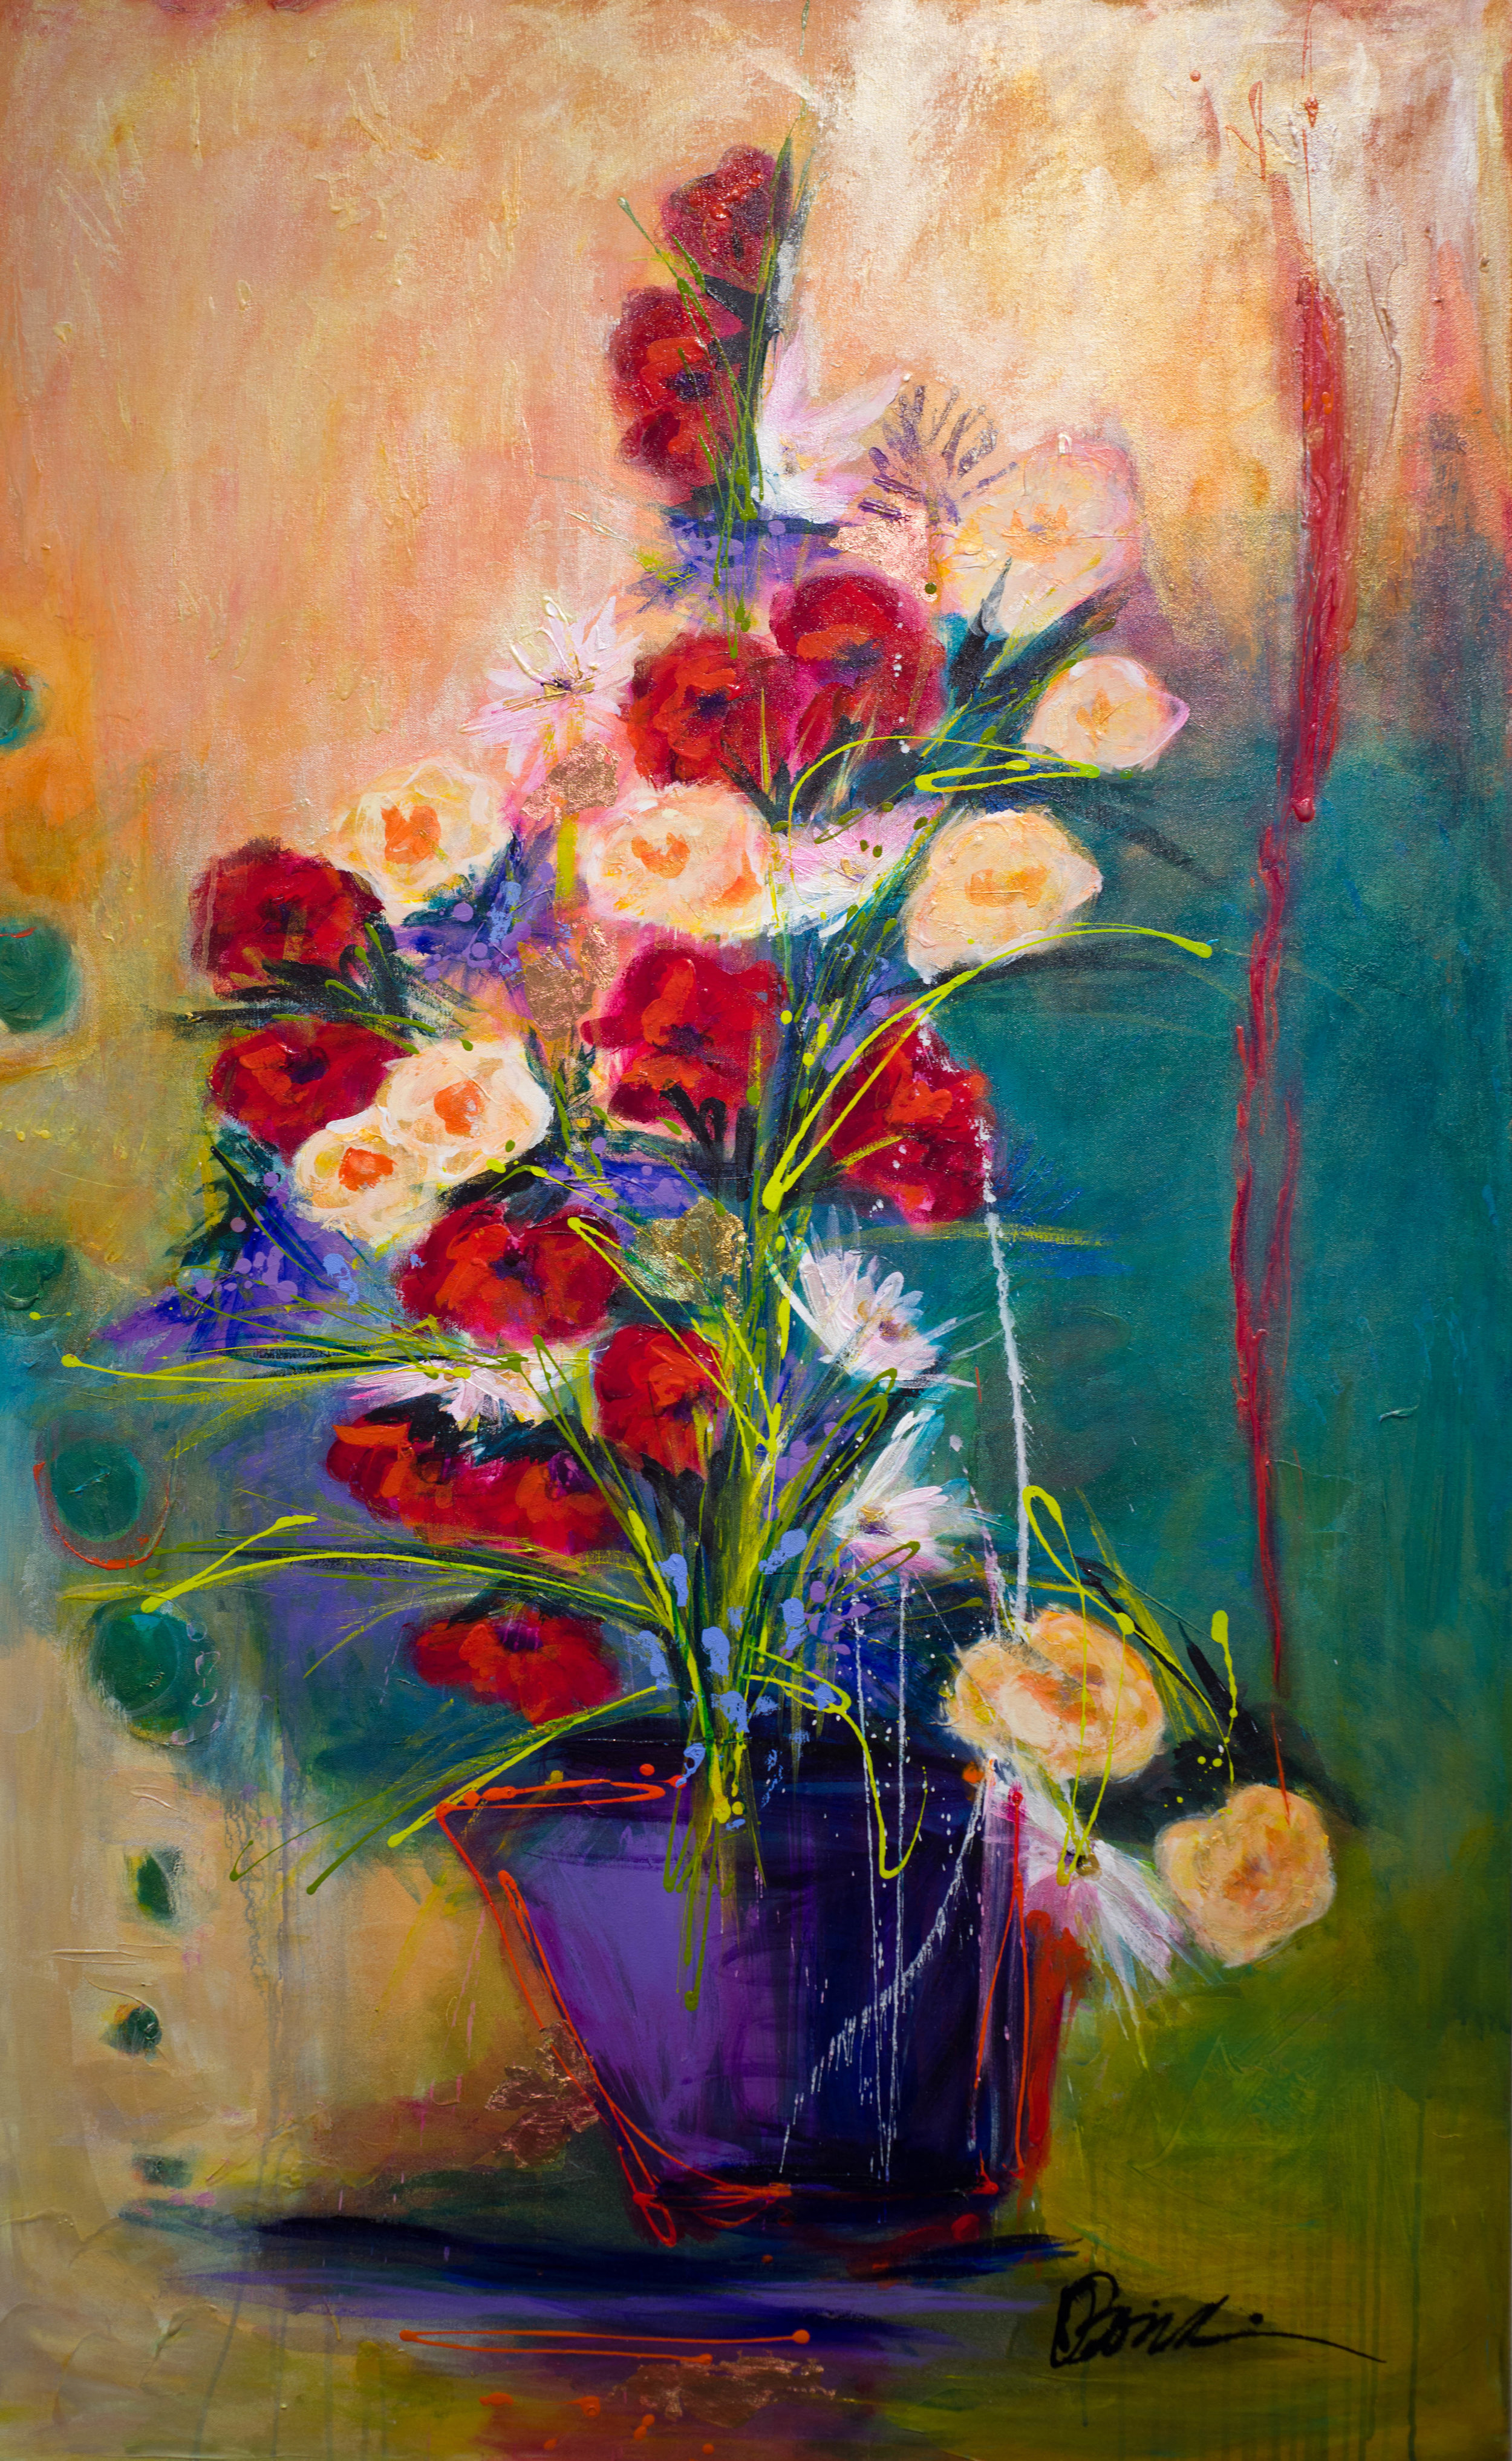 - Red Silk Ribbon (63x39) $7800